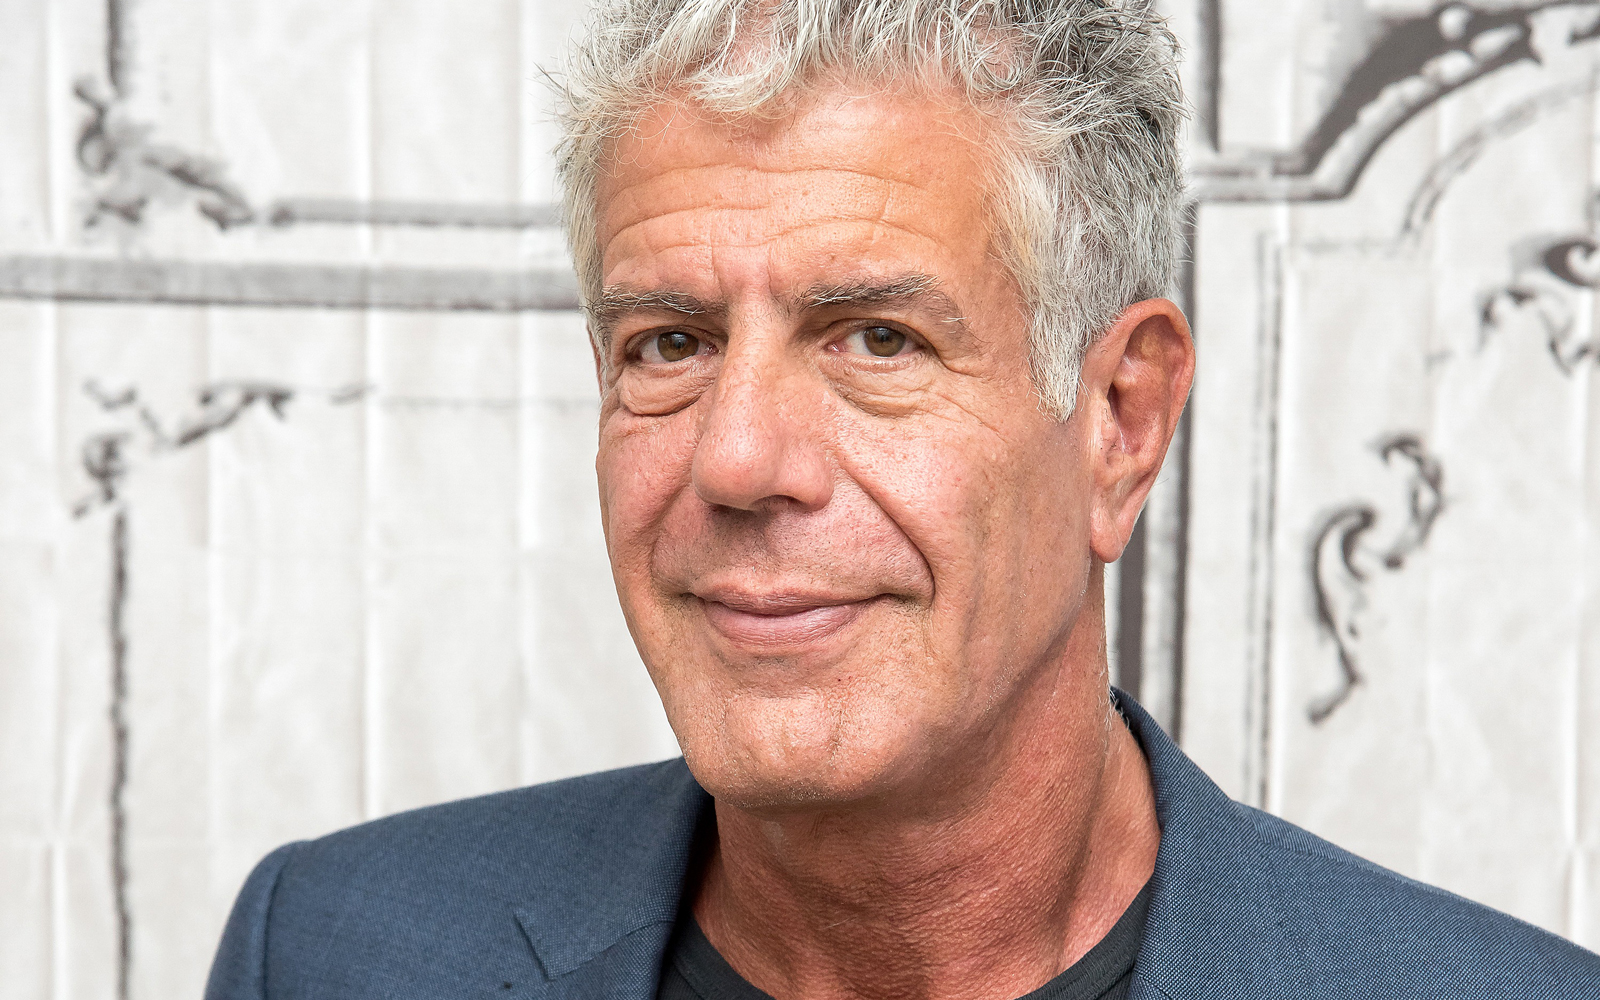 Anthony Bourdain to Have More Programming